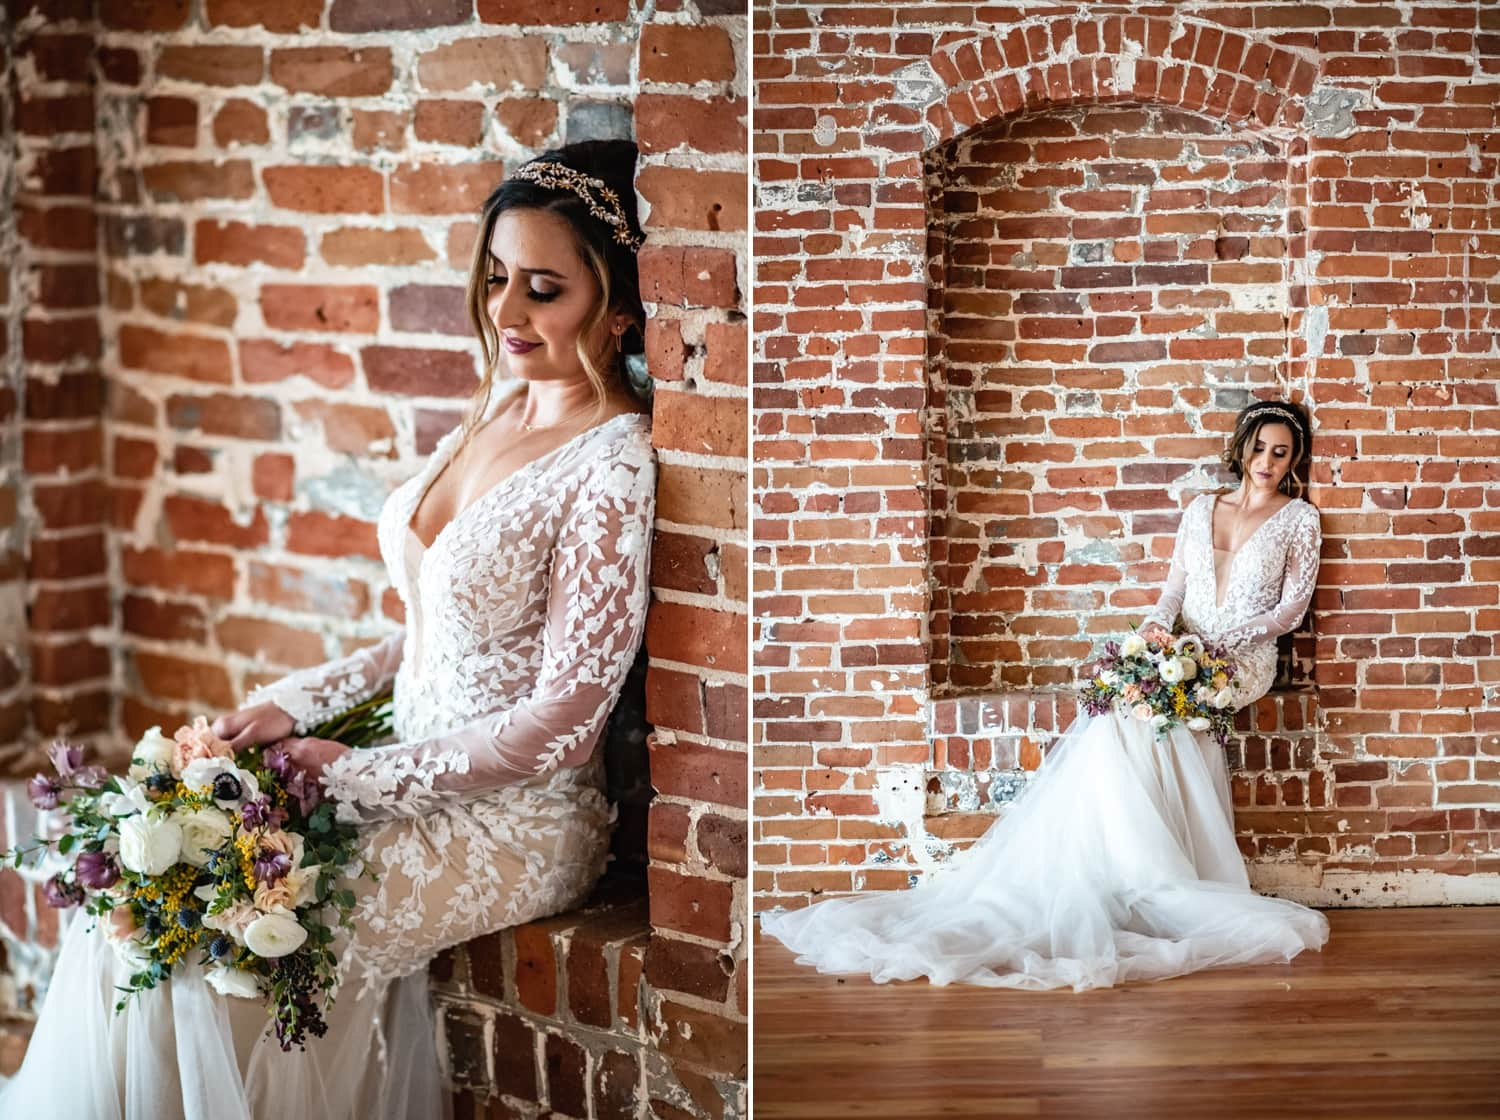 Bride against a brick wall.